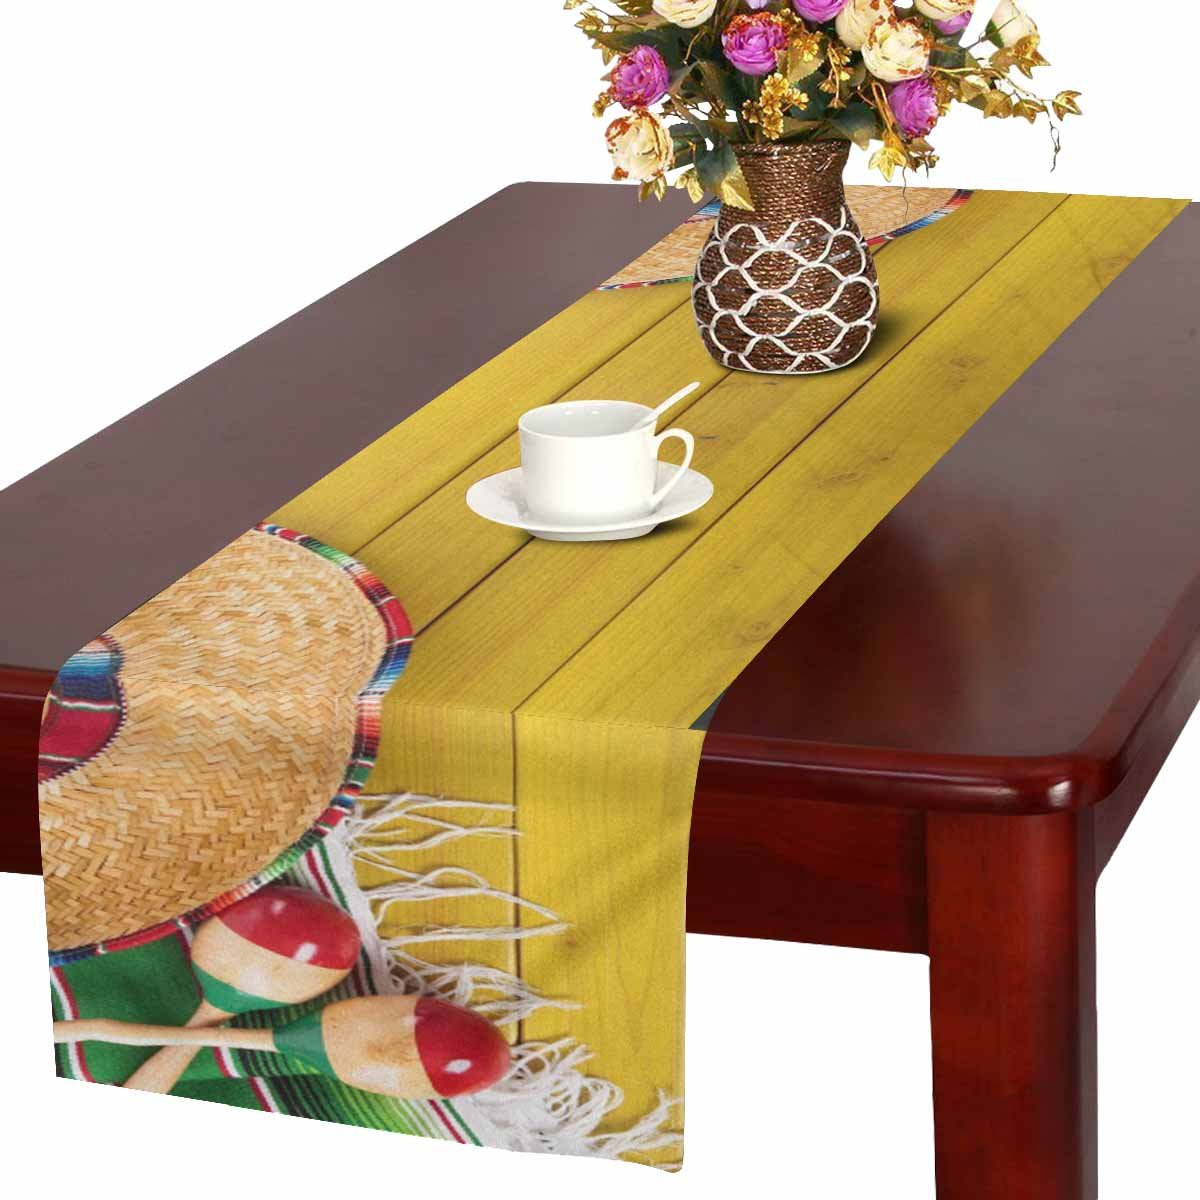 InterestPrint Funny Mexican Artwork Sombrero Hat Blanket on Wood Table Runner Cotton Linen Home Decor for Wedding Party Banquet Decoration 16 x 72 Inches